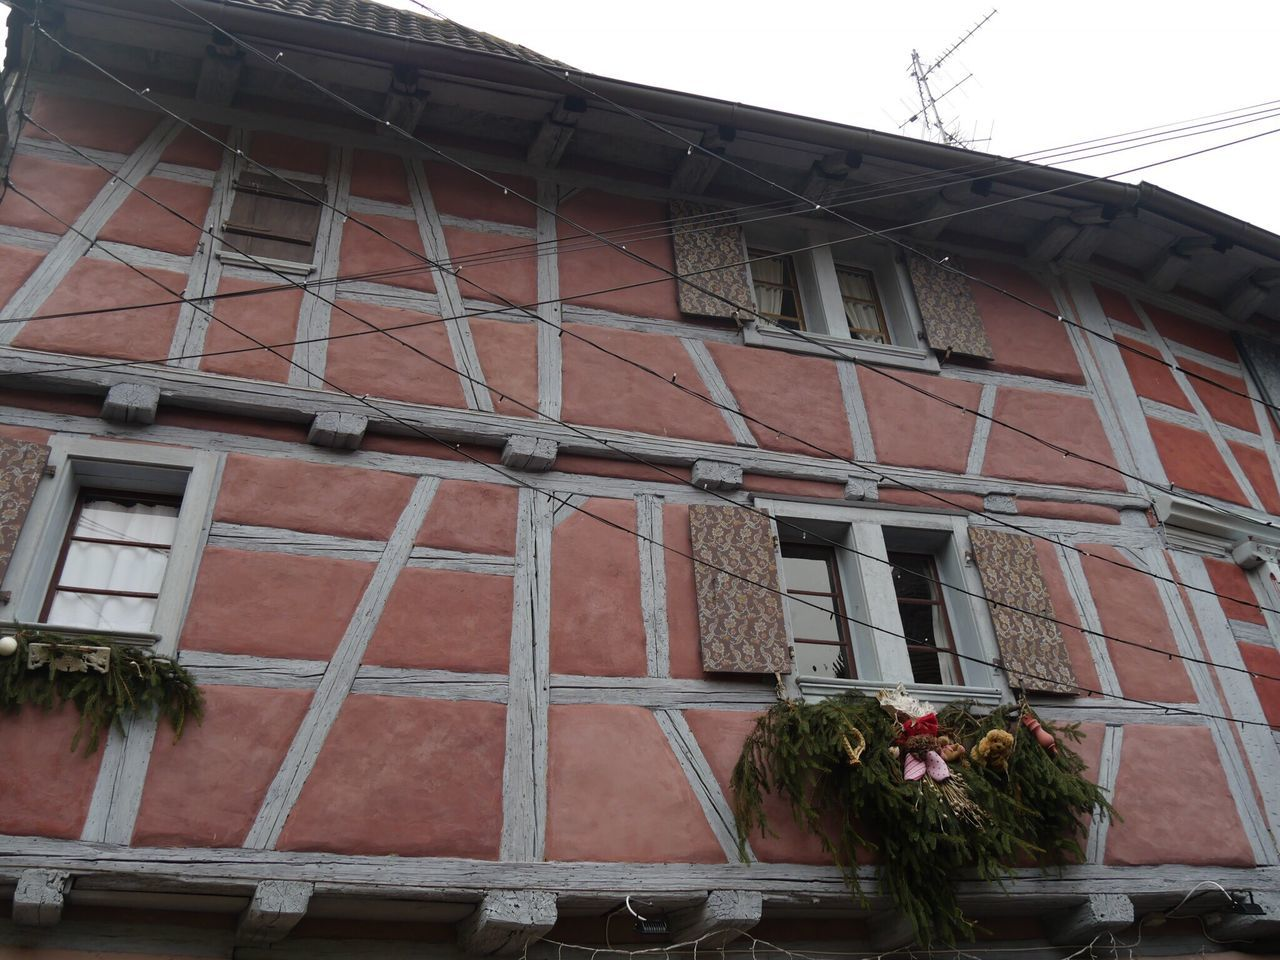 Eguisheim Alsace France Half-timbered House Building Exterior Low Angle View Architecture Window Built Structure No People Outdoors Day